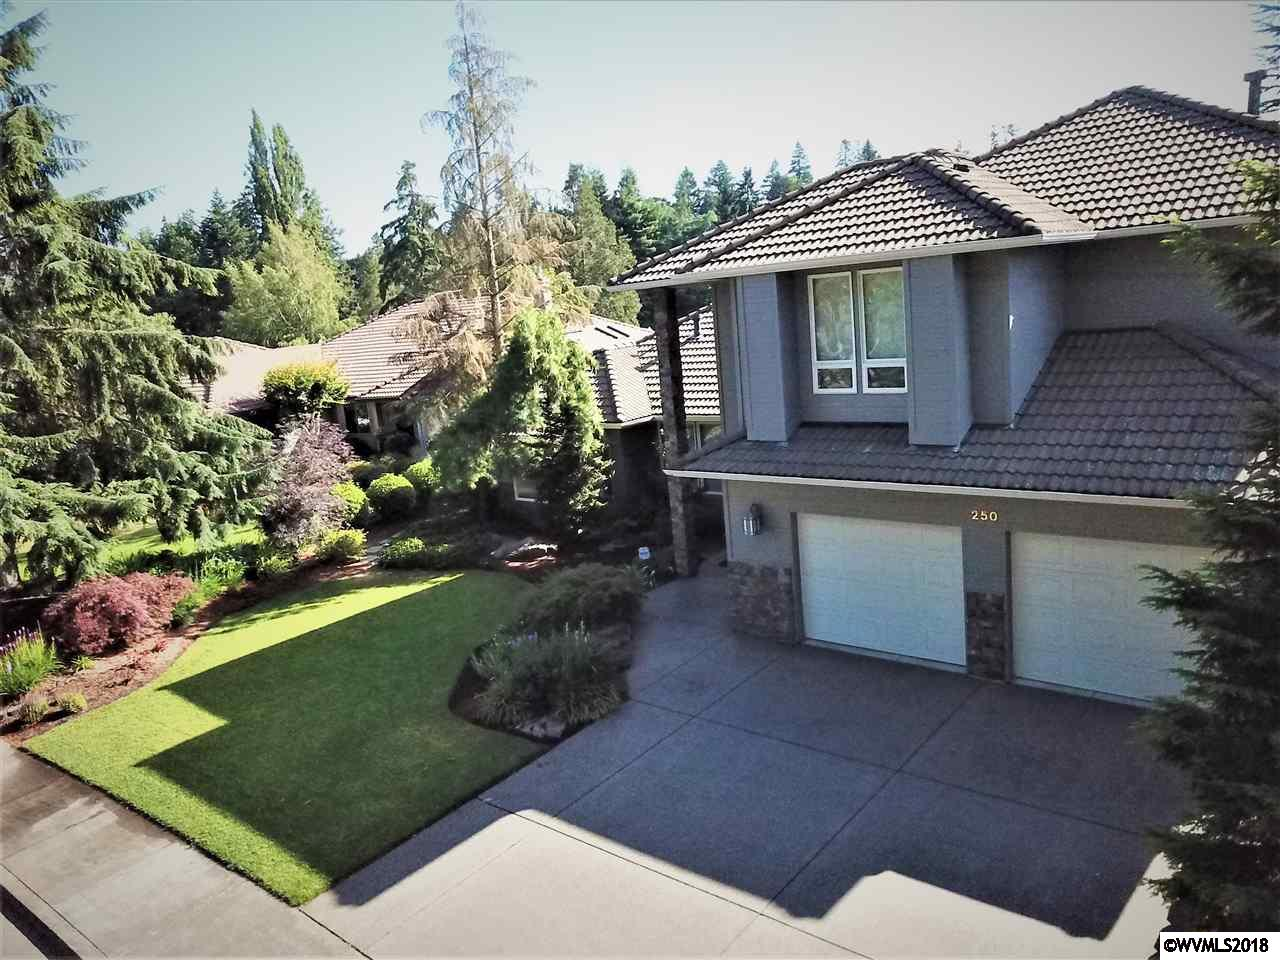 250 Snead Keizer, OR 97303